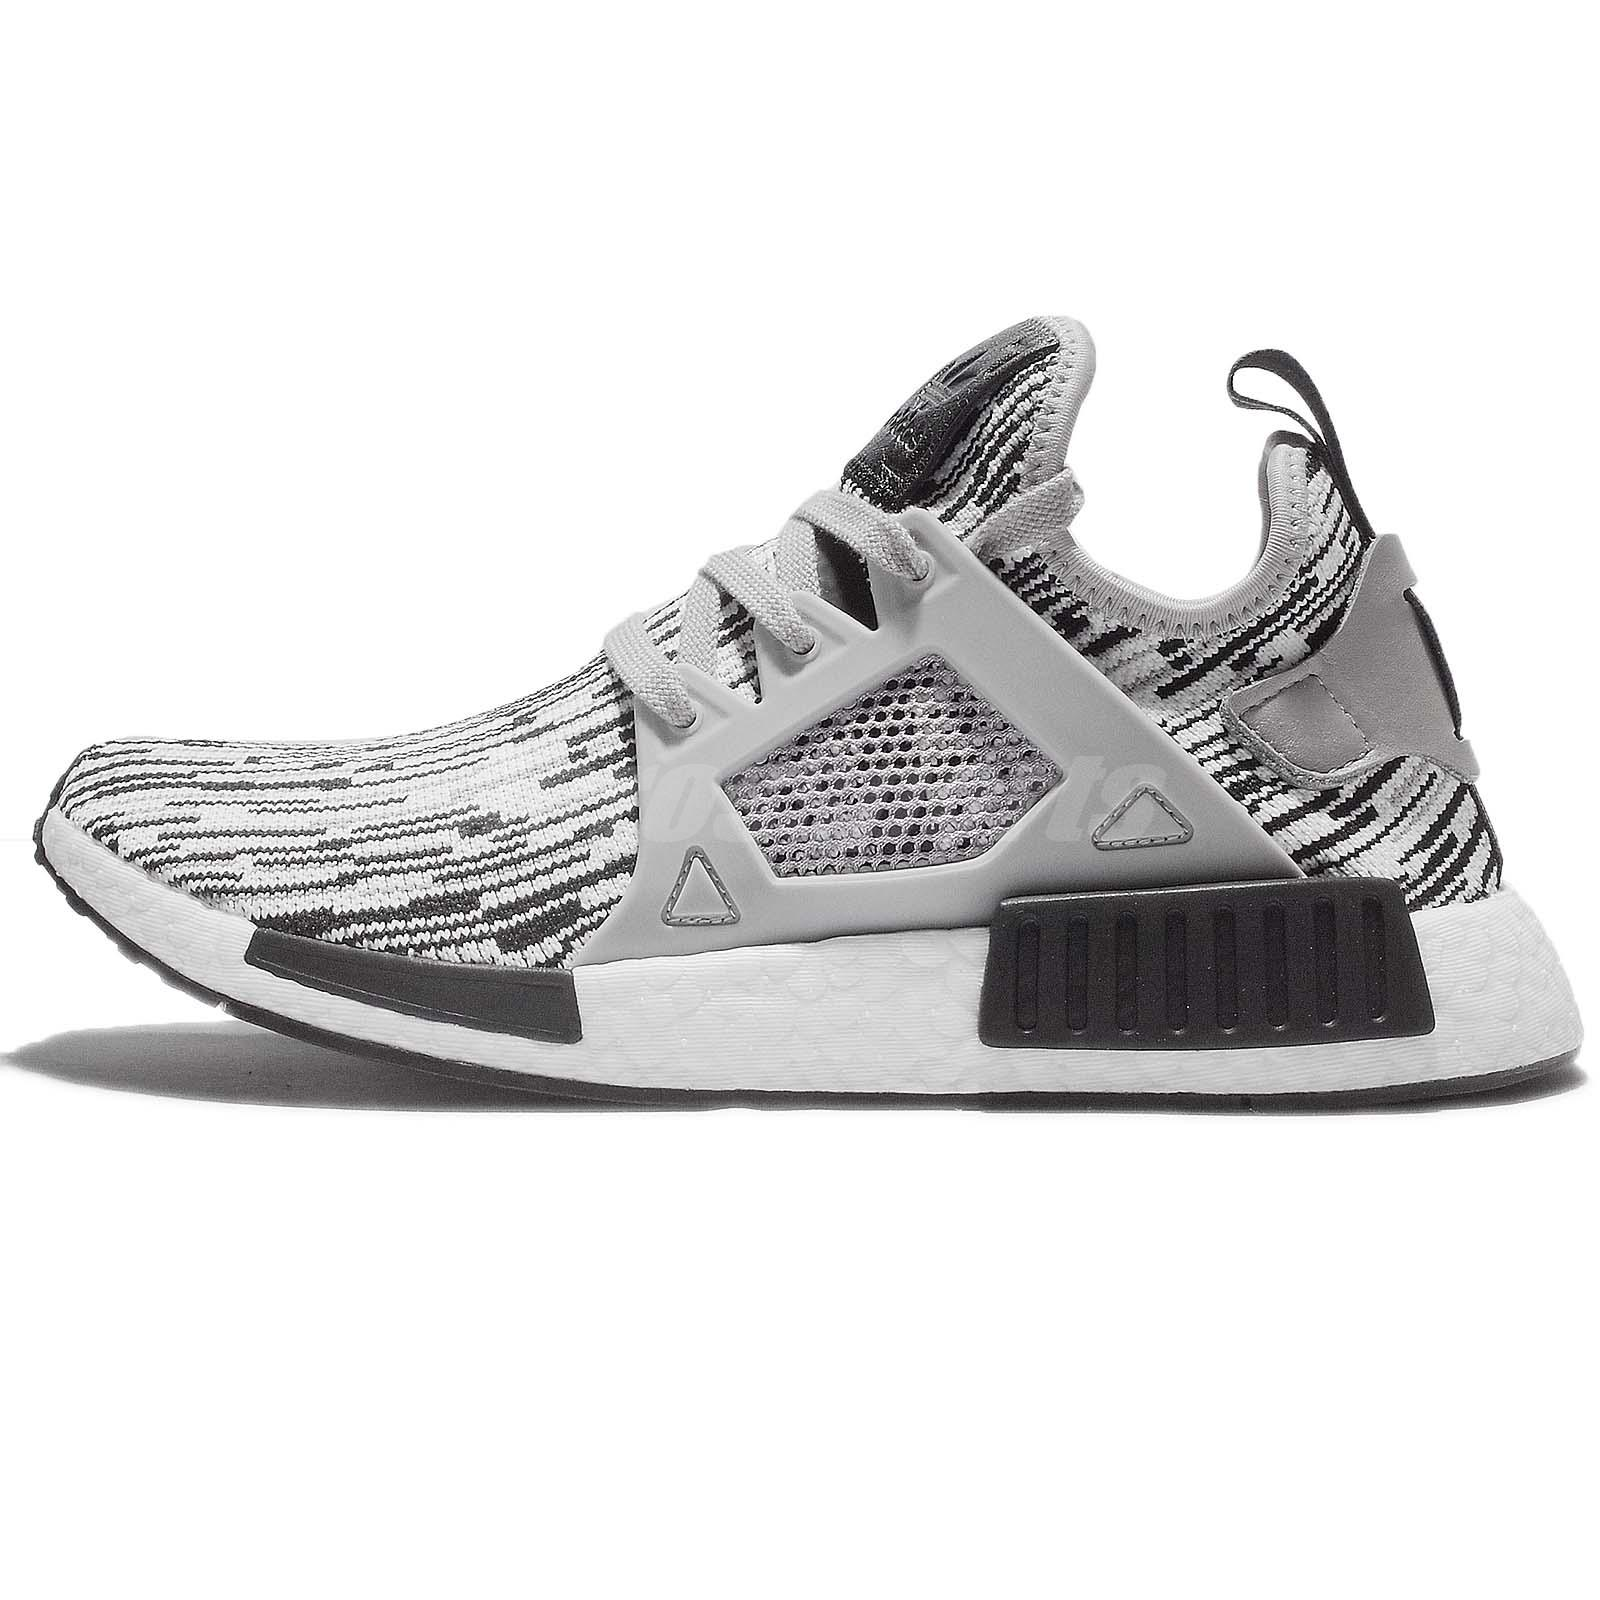 adidas NMD Xr1 Primeknit Mens By1910 Grey Glitch Black Running